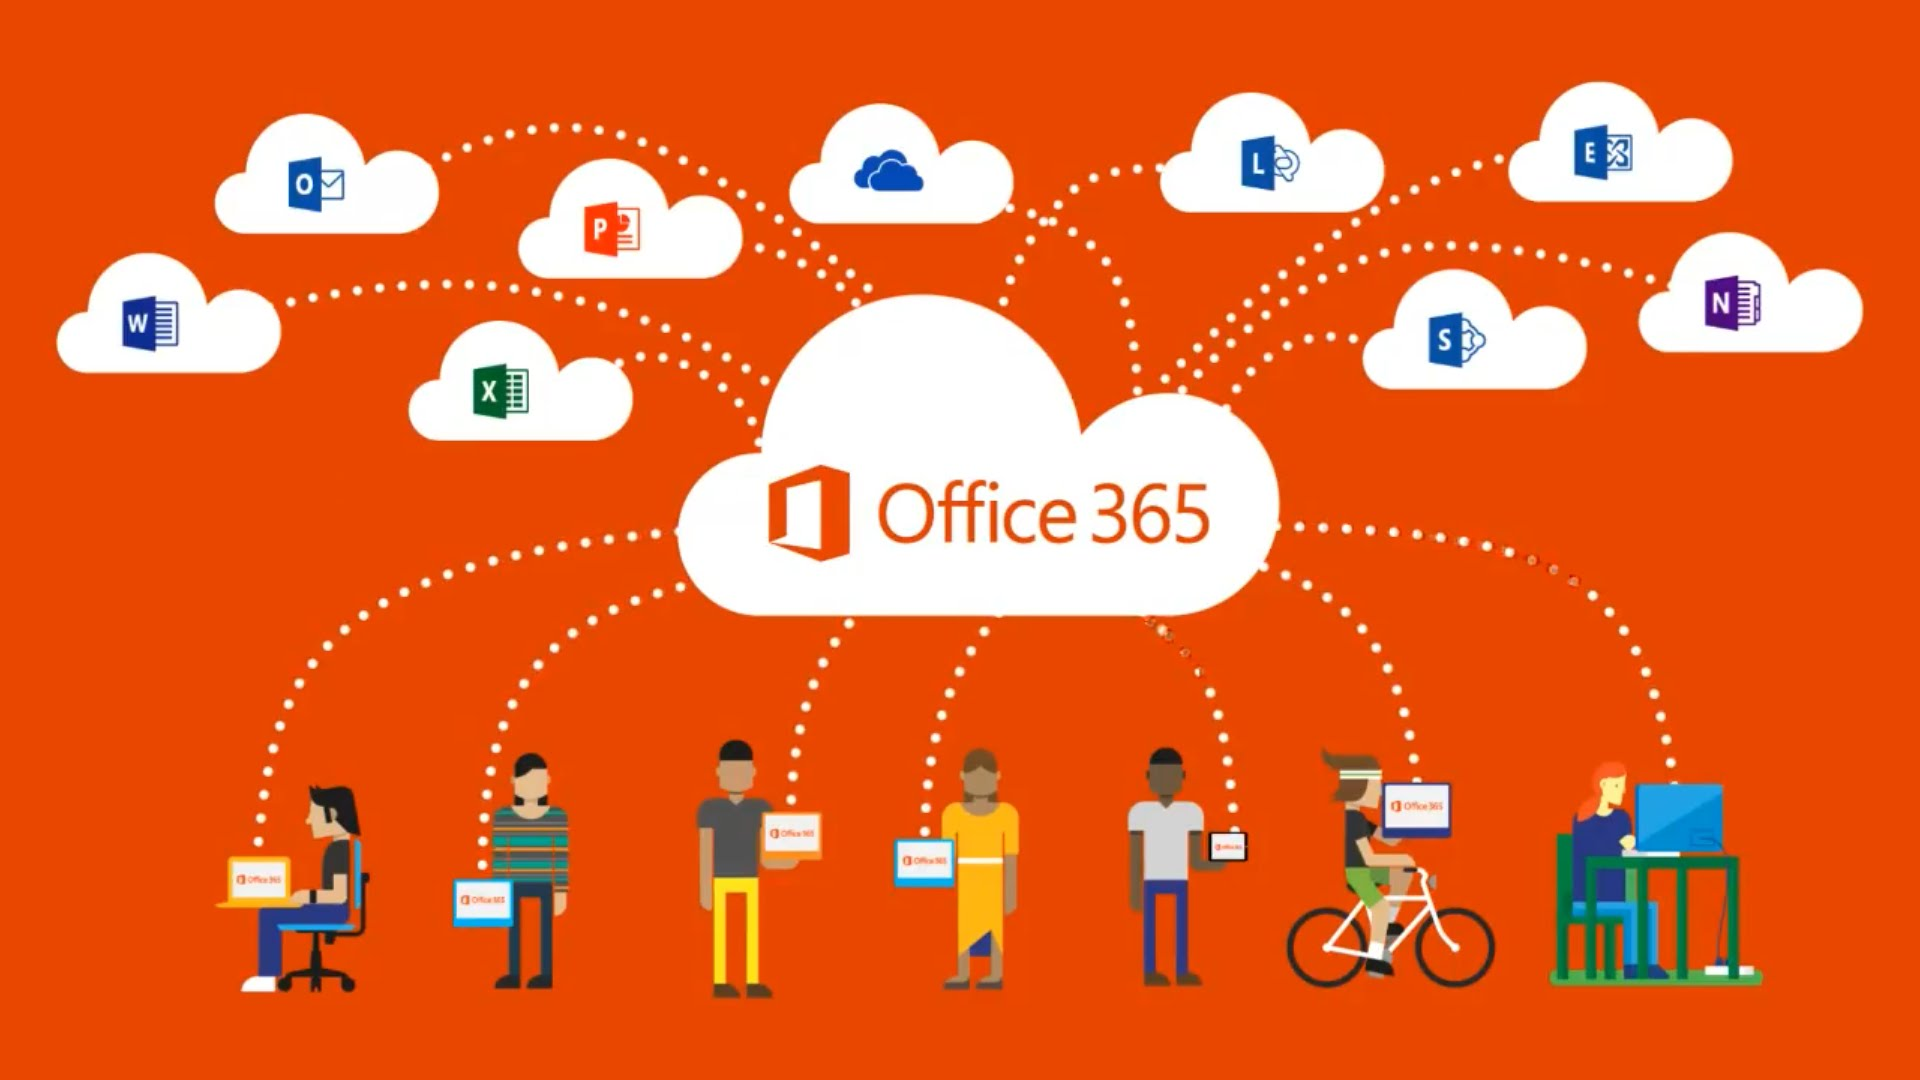 Office 365 Microsoft Access Office 365 Anywhere Access The Fulcrum Group